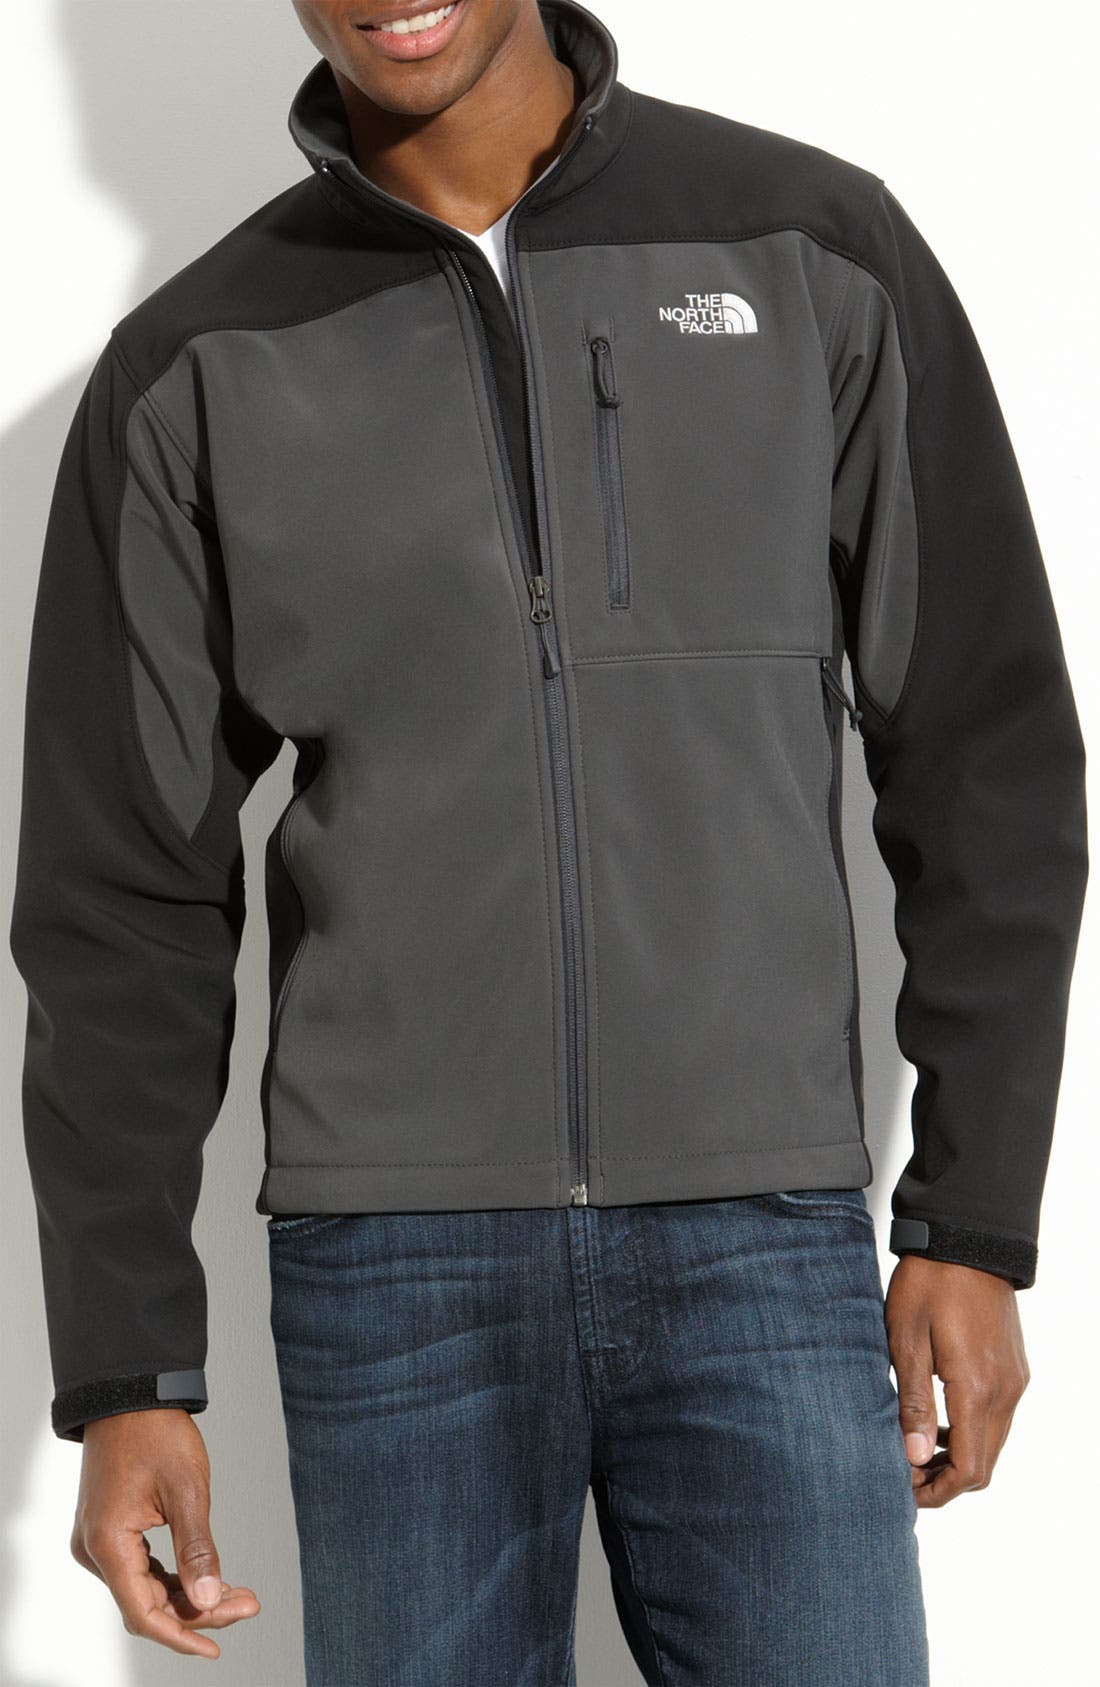 Alternate Image 1 Selected - The North Face 'Apex Bionic' Softshell Jacket